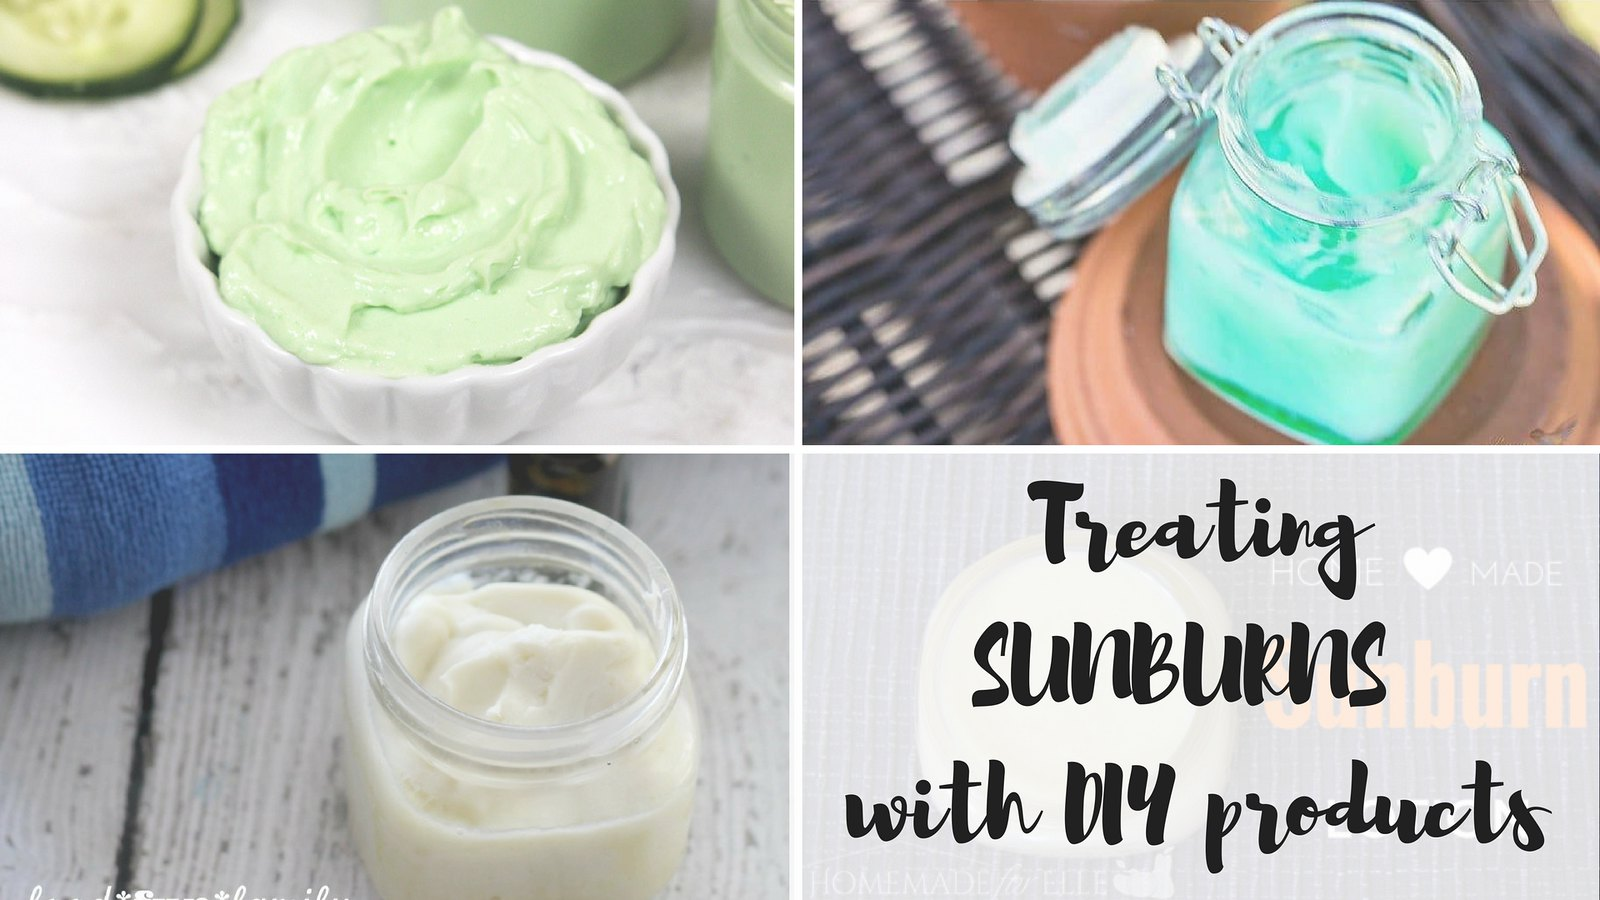 Treating sunburns with DIY products